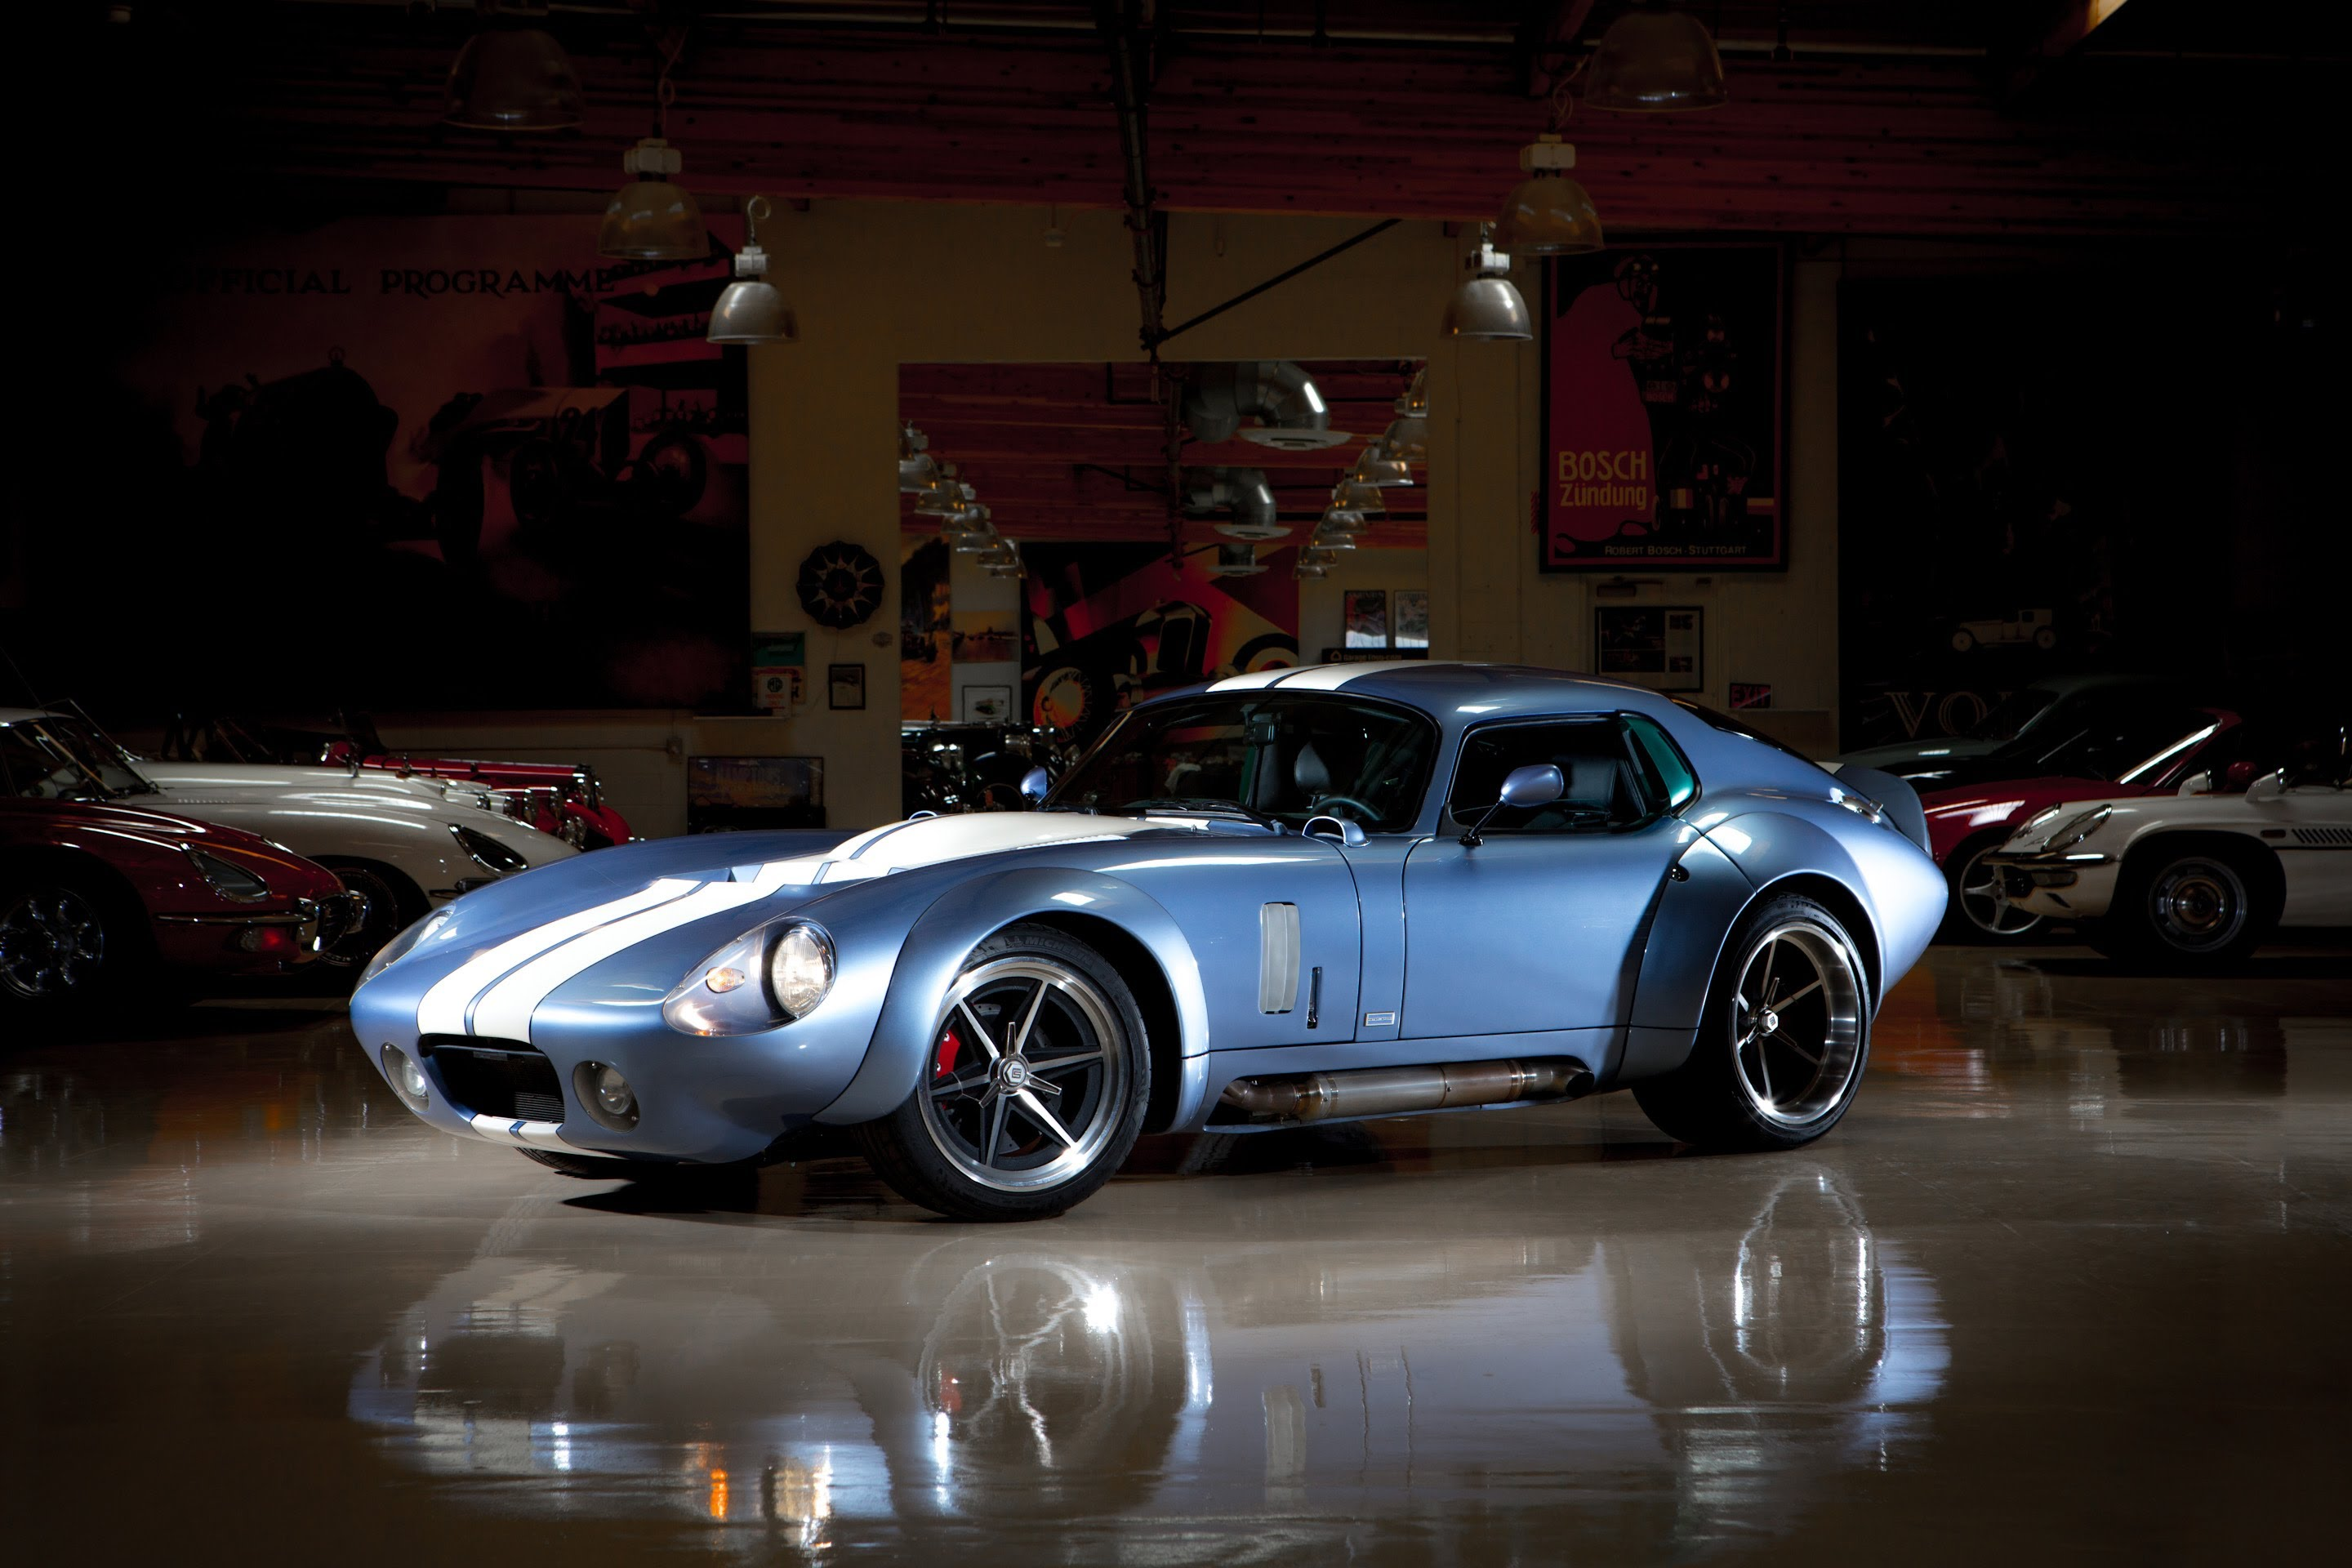 1999 Shelby Brock Daytona Coupe – Jay Leno's Garage